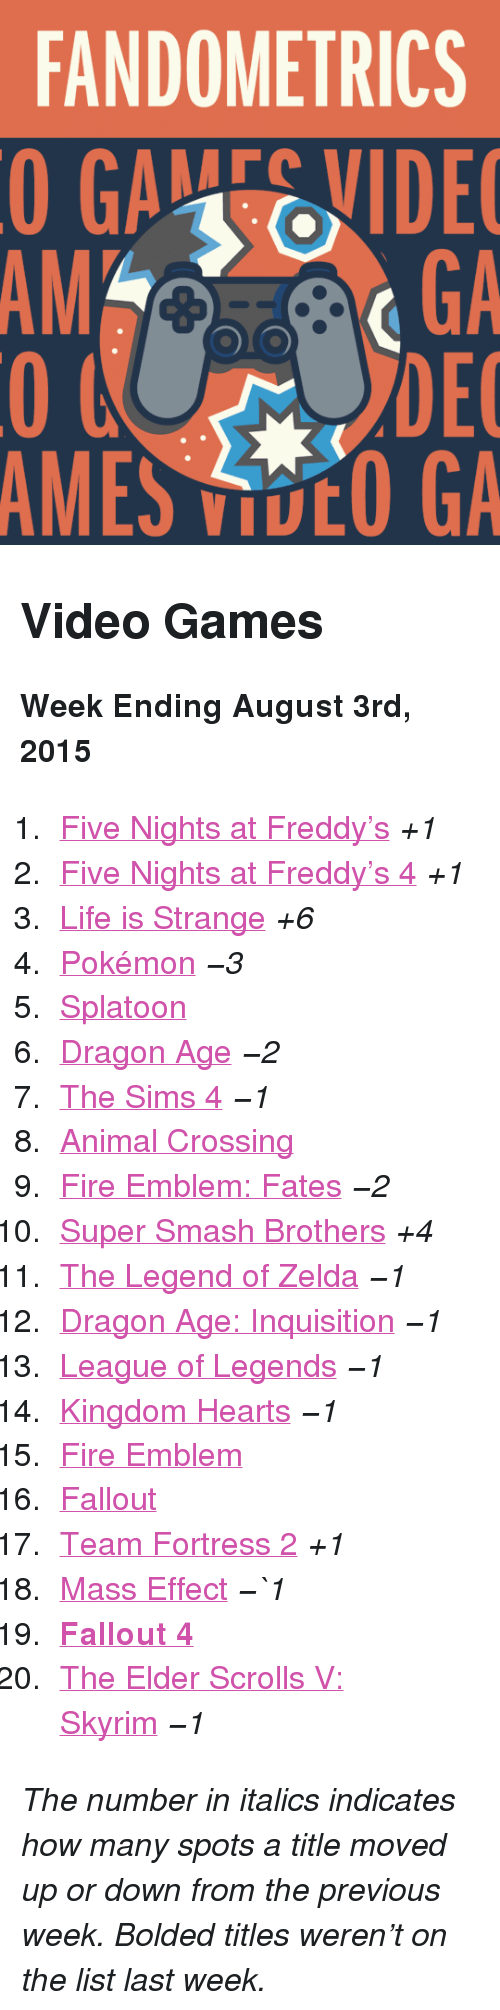 "Five Nights: FANDOMETRICS  GAEVIDE  GA  DEC  AMES VOO GA  AM <h2>Video Games</h2><p><b>Week Ending August 3rd, 2015</b></p><ol><li><a href=""http://www.tumblr.com/search/five%20nights%20at%20freddy's"">Five Nights at Freddy&rsquo;s</a> <i>+1</i></li>  <li><a href=""http://www.tumblr.com/search/five%20nights%20at%20freddy's%204"">Five Nights at Freddy&rsquo;s 4</a> <i>+1</i></li>  <li><a href=""http://www.tumblr.com/search/life%20is%20strange"">Life is Strange</a> <i>+6</i></li>  <li><a href=""http://www.tumblr.com/search/pokemon"">Pokémon</a> <i>−3</i></li>  <li><a href=""http://www.tumblr.com/search/splatoon"">Splatoon</a> </li>  <li><a href=""http://www.tumblr.com/search/dragon%20age"">Dragon Age</a> <i>−2</i></li>  <li><a href=""http://www.tumblr.com/search/sims%204"">The Sims 4</a> <i>−1</i></li>  <li><a href=""http://www.tumblr.com/search/acnl"">Animal Crossing</a></li>  <li><a href=""http://www.tumblr.com/search/fire%20emblem%20fates"">Fire Emblem: Fates</a> <i>−2</i></li>  <li><a href=""http://www.tumblr.com/search/super%20smash%20bros"">Super Smash Brothers</a> <i>+4</i></li>  <li><a href=""http://www.tumblr.com/search/legend%20of%20zelda"">The Legend of Zelda</a> <i>−1</i></li>  <li><a href=""http://www.tumblr.com/search/dragon%20age%20inquisition"">Dragon Age: Inquisition</a> <i>−1</i></li>  <li><a href=""http://www.tumblr.com/search/league%20of%20legends"">League of Legends</a> <i>−1</i></li>  <li><a href=""http://www.tumblr.com/search/kingdom%20hearts"">Kingdom Hearts</a> <i>−1</i></li>  <li><a href=""http://www.tumblr.com/search/fire%20emblem"">Fire Emblem</a> </li>  <li><a href=""http://www.tumblr.com/search/fallout"">Fallout</a></li>  <li><a href=""http://www.tumblr.com/search/tf2"">Team Fortress 2</a> <i>+1</i></li>  <li><a href=""http://www.tumblr.com/search/mass%20effect"">Mass Effect</a> <i>−`1</i></li>  <li><a href=""http://www.tumblr.com/search/fallout%204""><b>Fallout 4</b></a></li>  <li><a href=""http://www.tumblr.com/search/skyrim"">The Elder Scrolls V: Skyrim</a> <i>−1</i></li></ol><p><i>The number in italics indicates how many spots a title moved up or down from the previous week. Bolded titles weren't on the list last week.</i></p>"